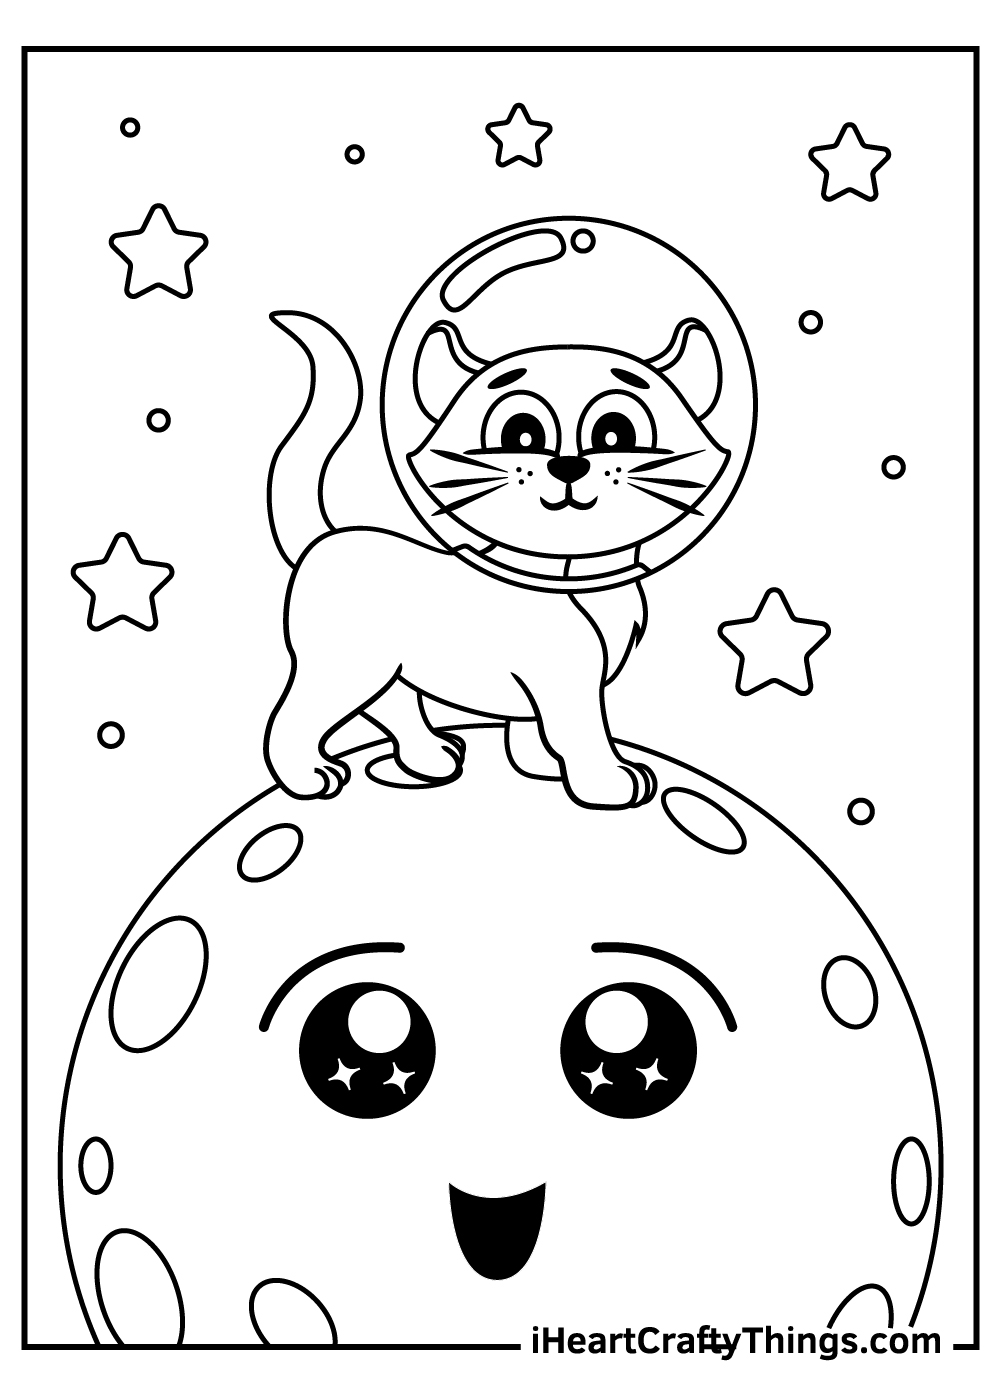 can on a moon coloring pages